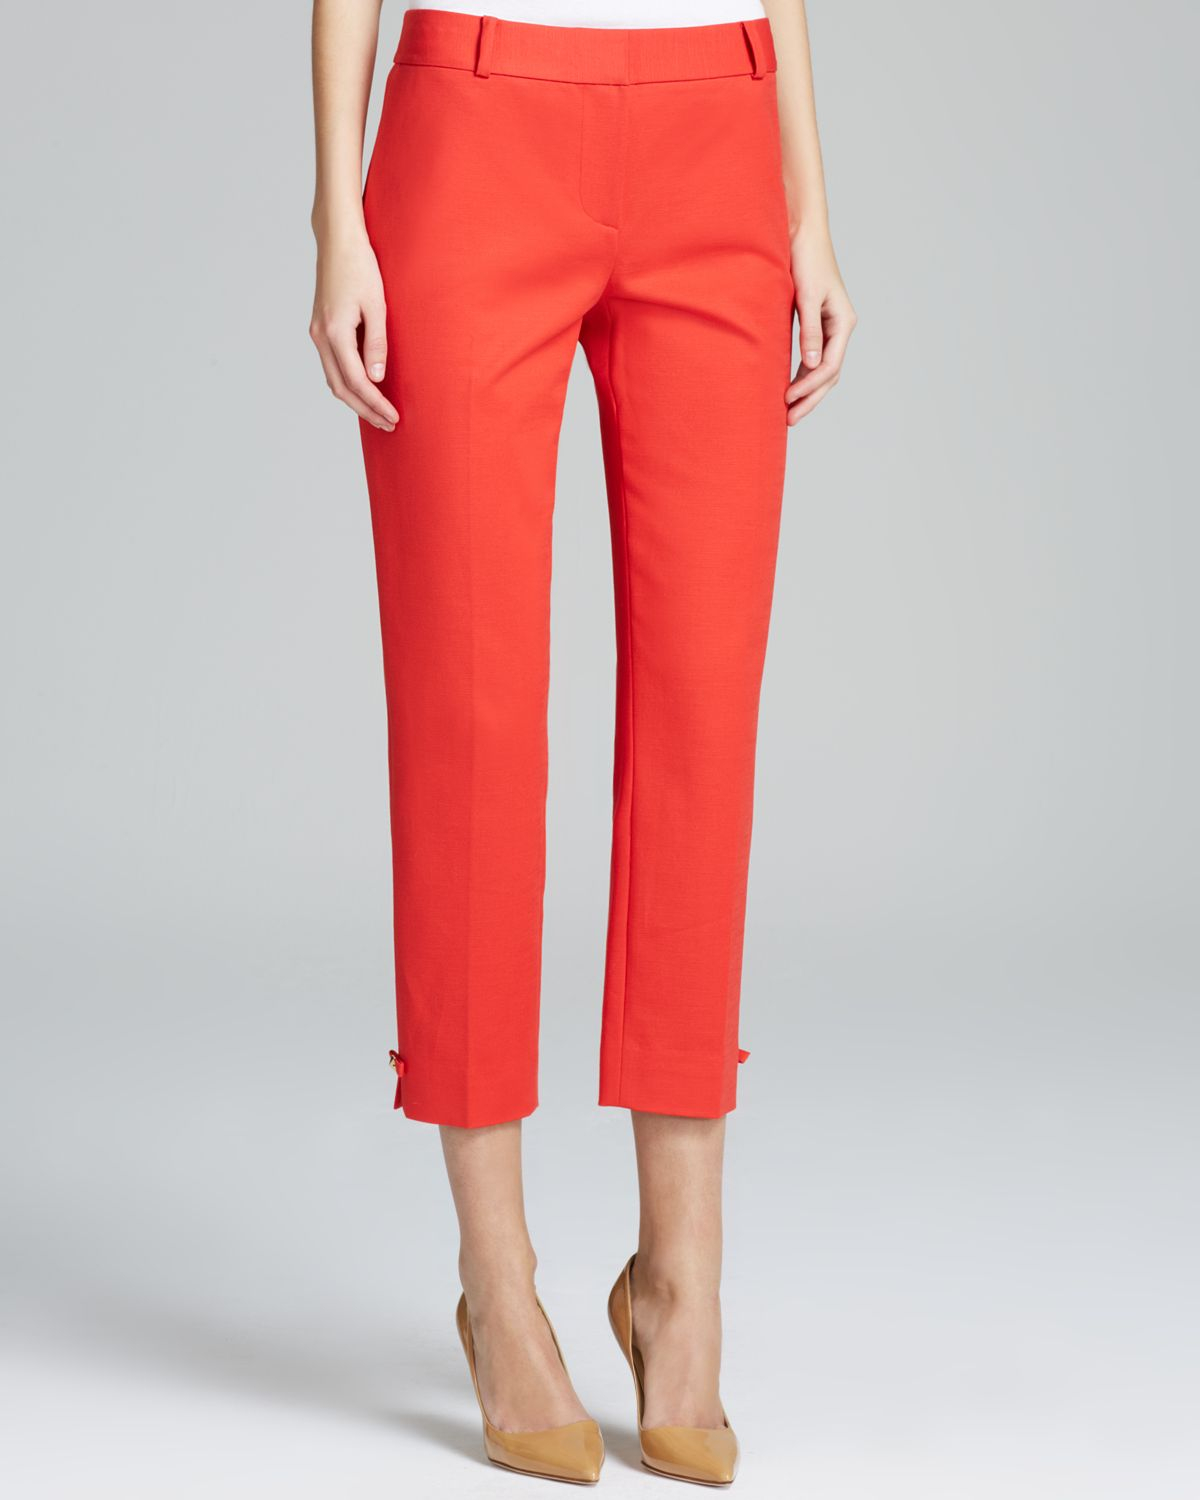 Kate spade new york Jackie Capri Pants in Orange | Lyst